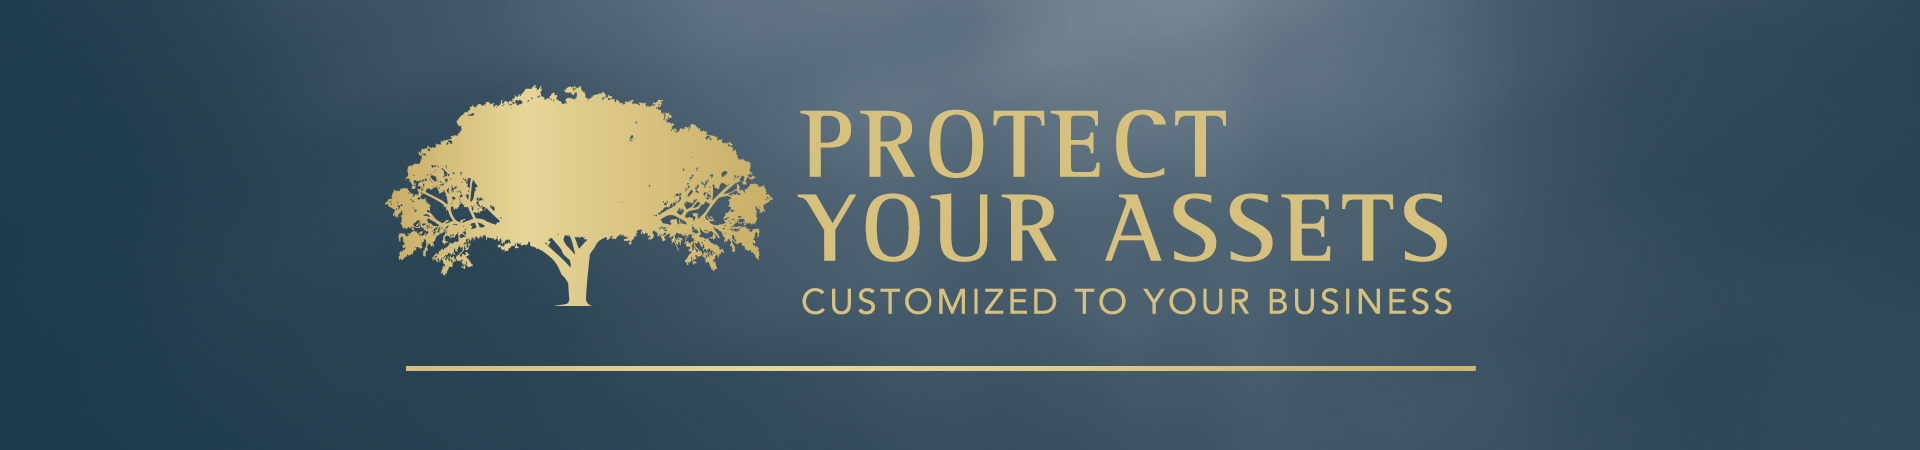 Mesq-header-design-protect-your-assets-20160503_1920x450